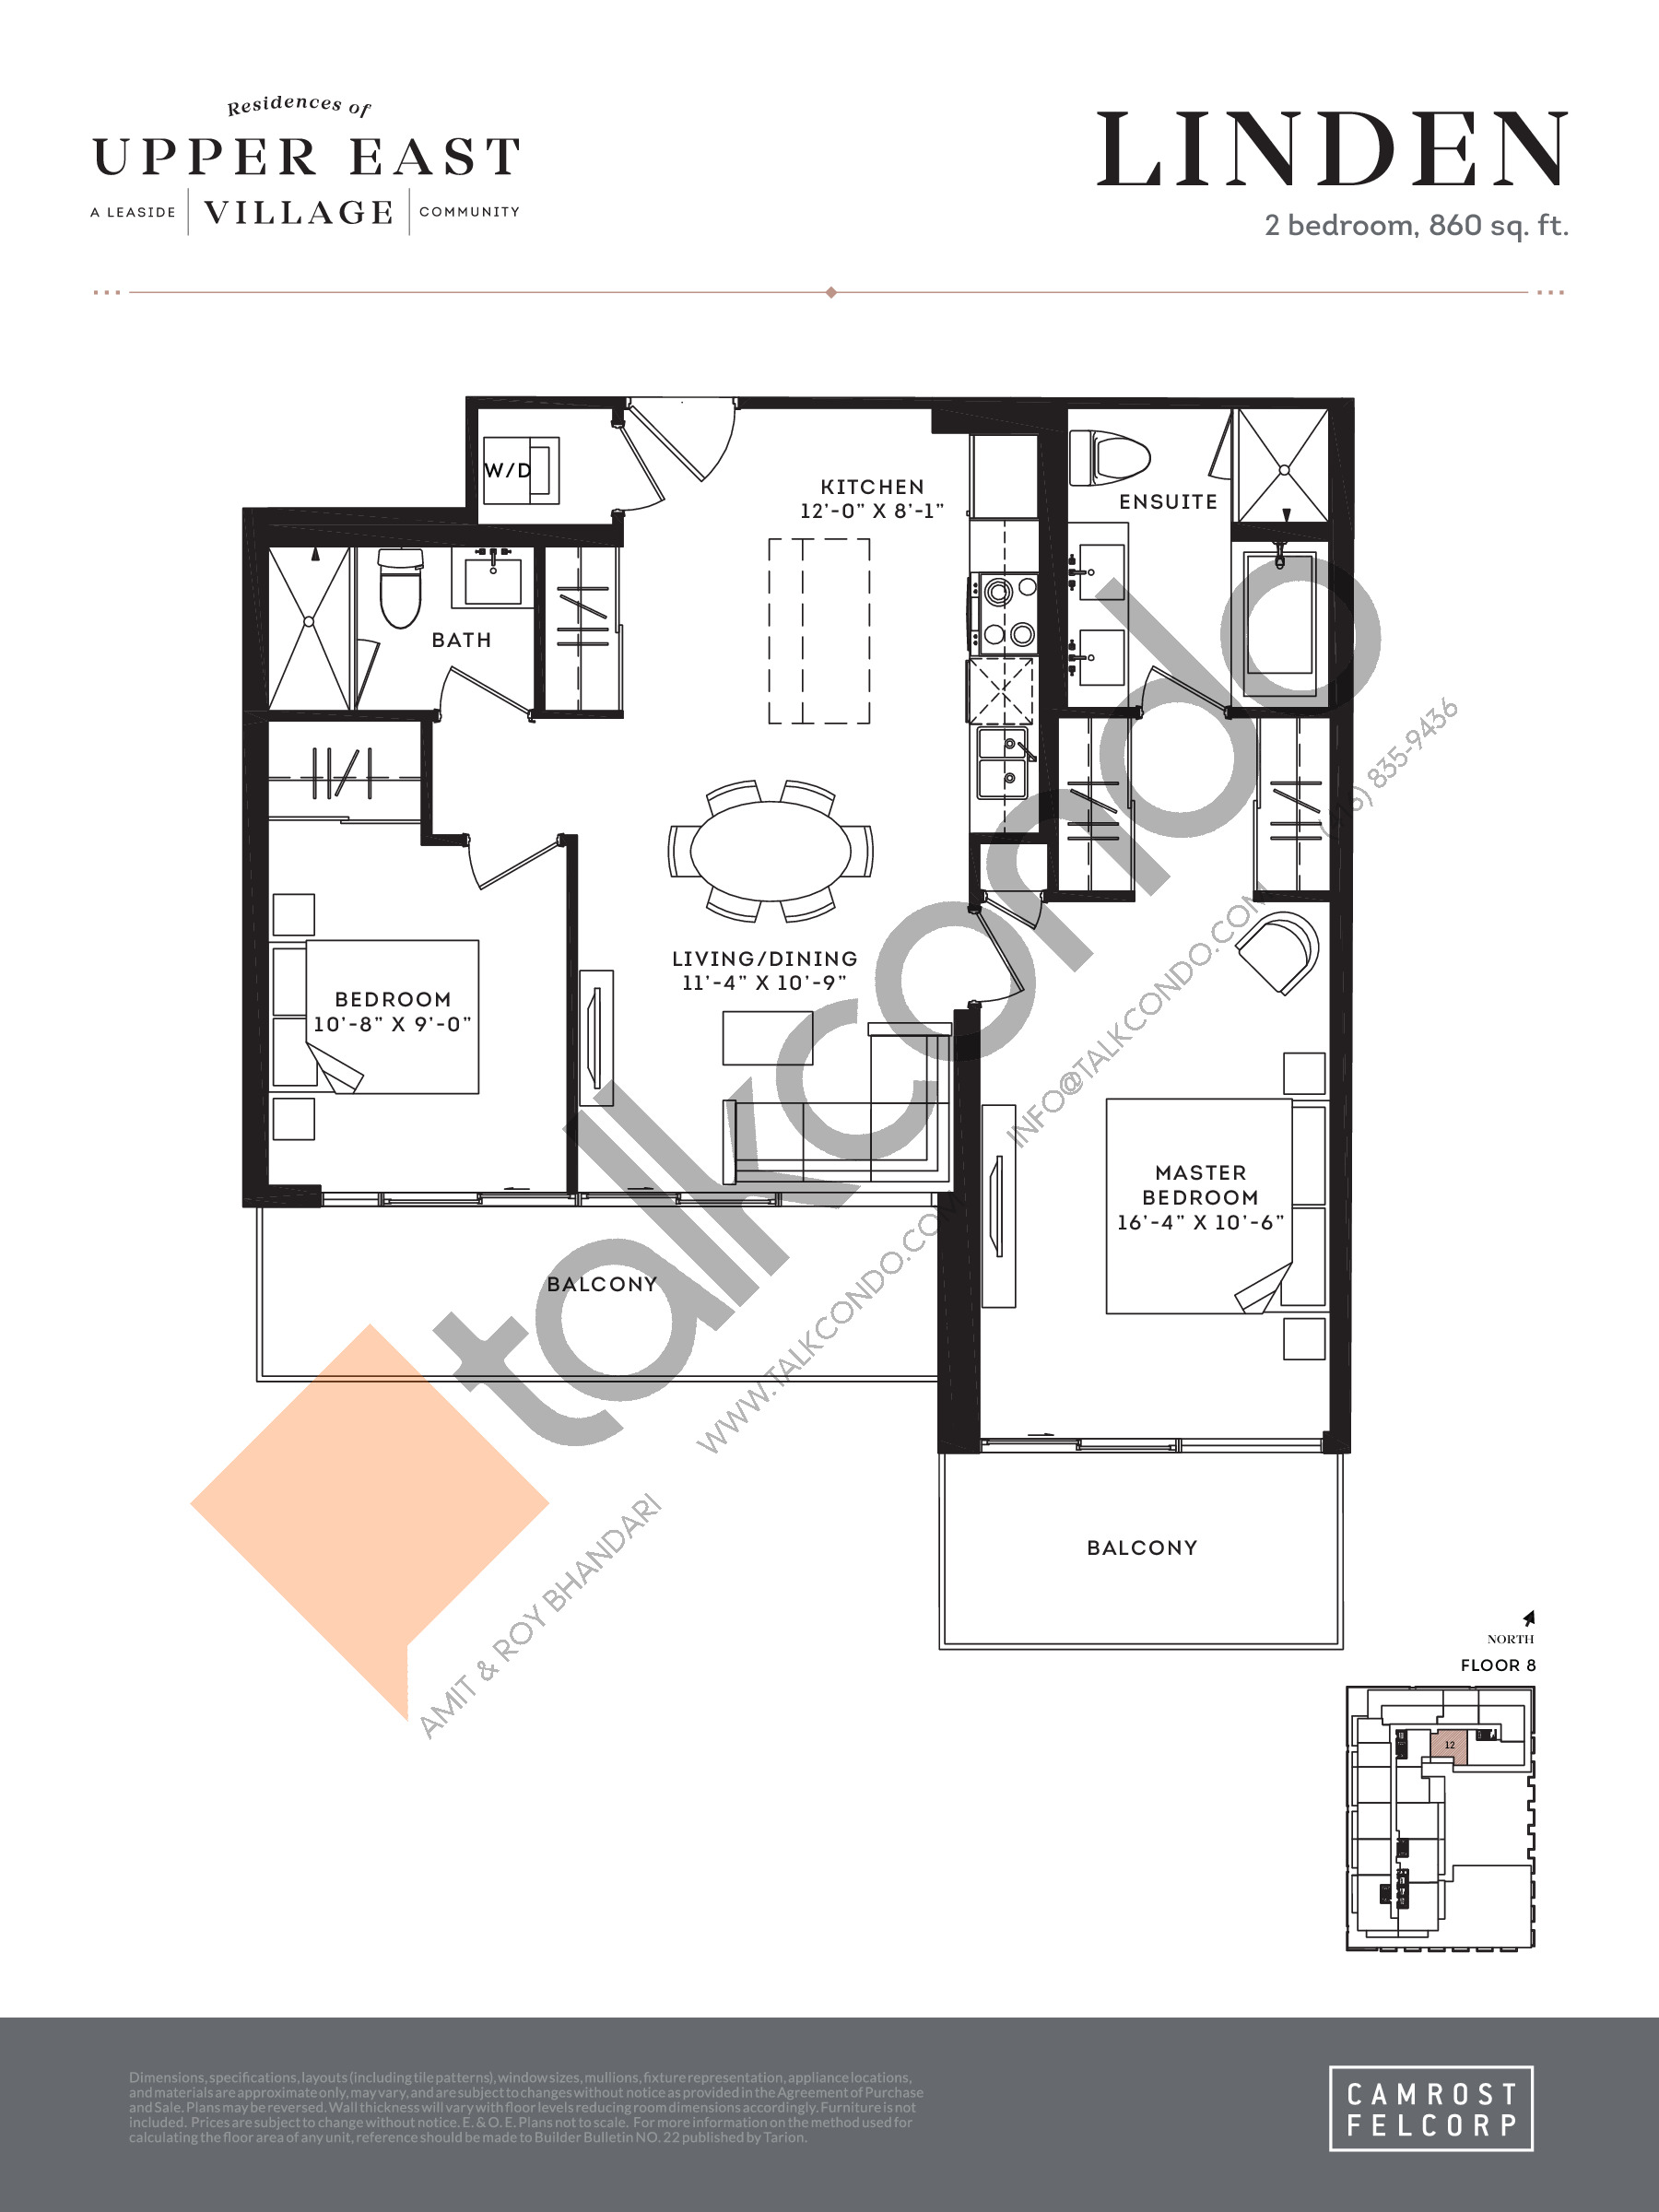 Linden Floor Plan at Upper East Village Condos - 860 sq.ft